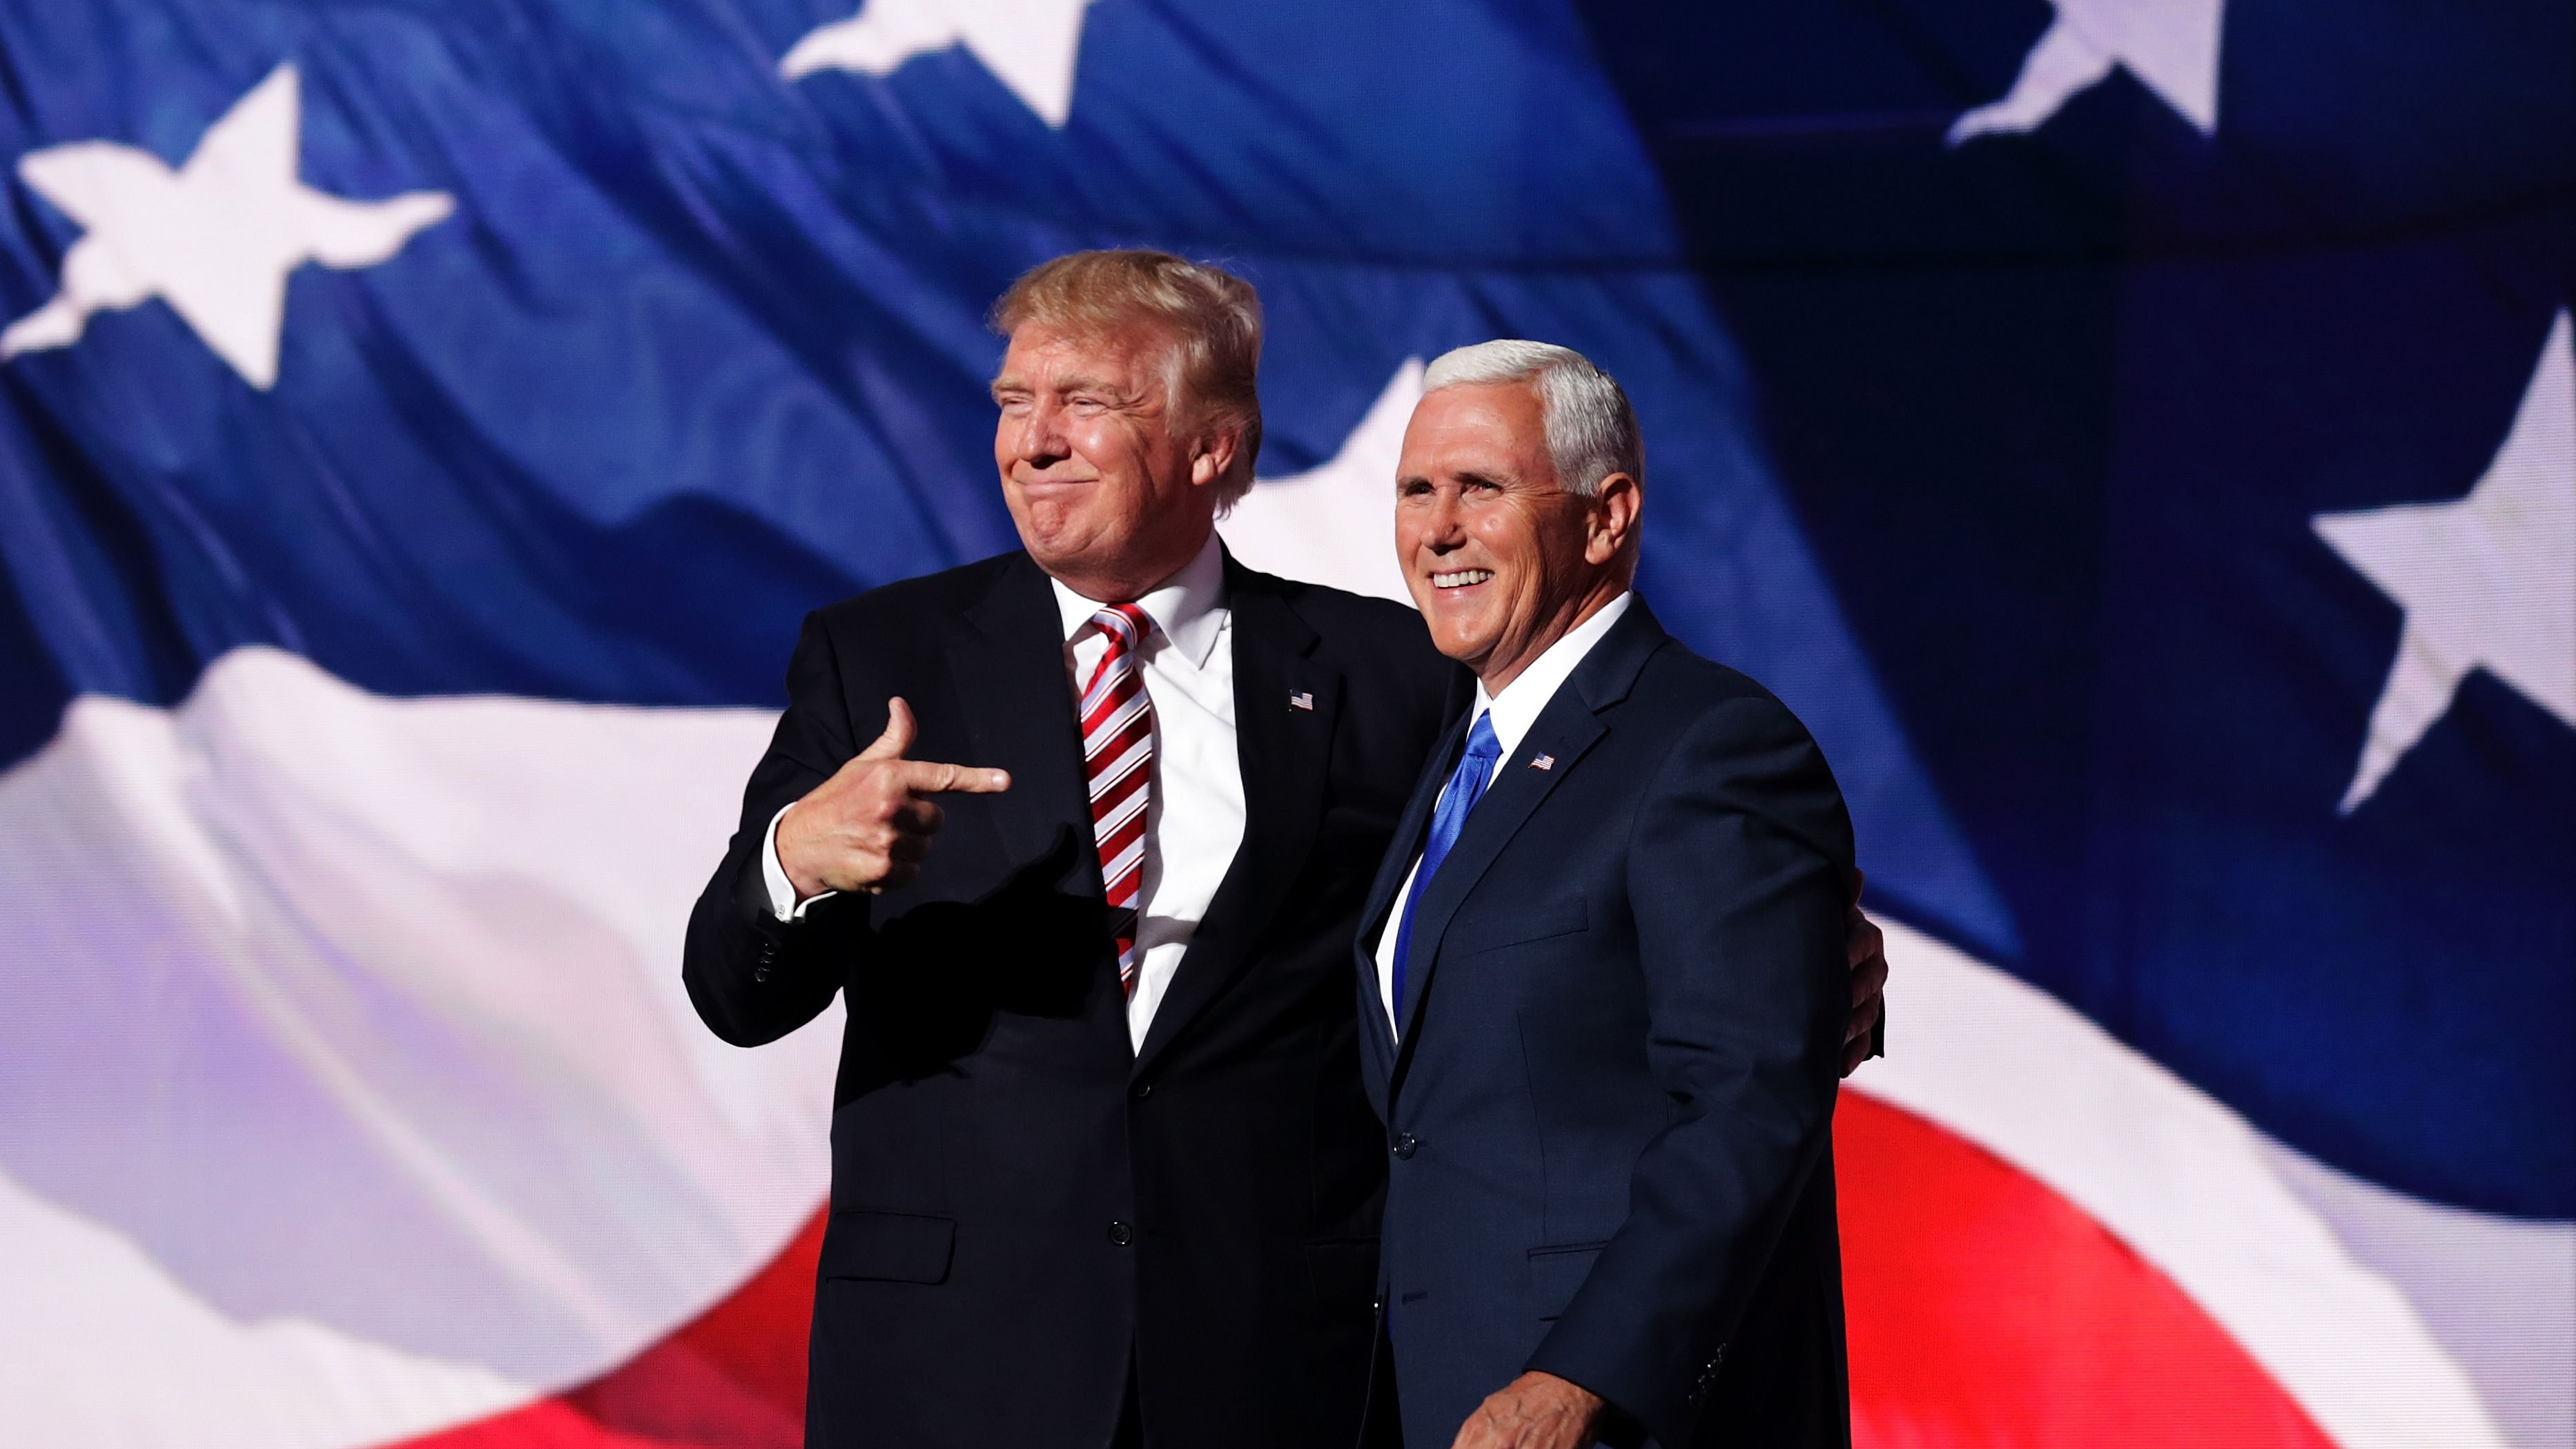 The Trump card in the elections: MIKE PENCE.